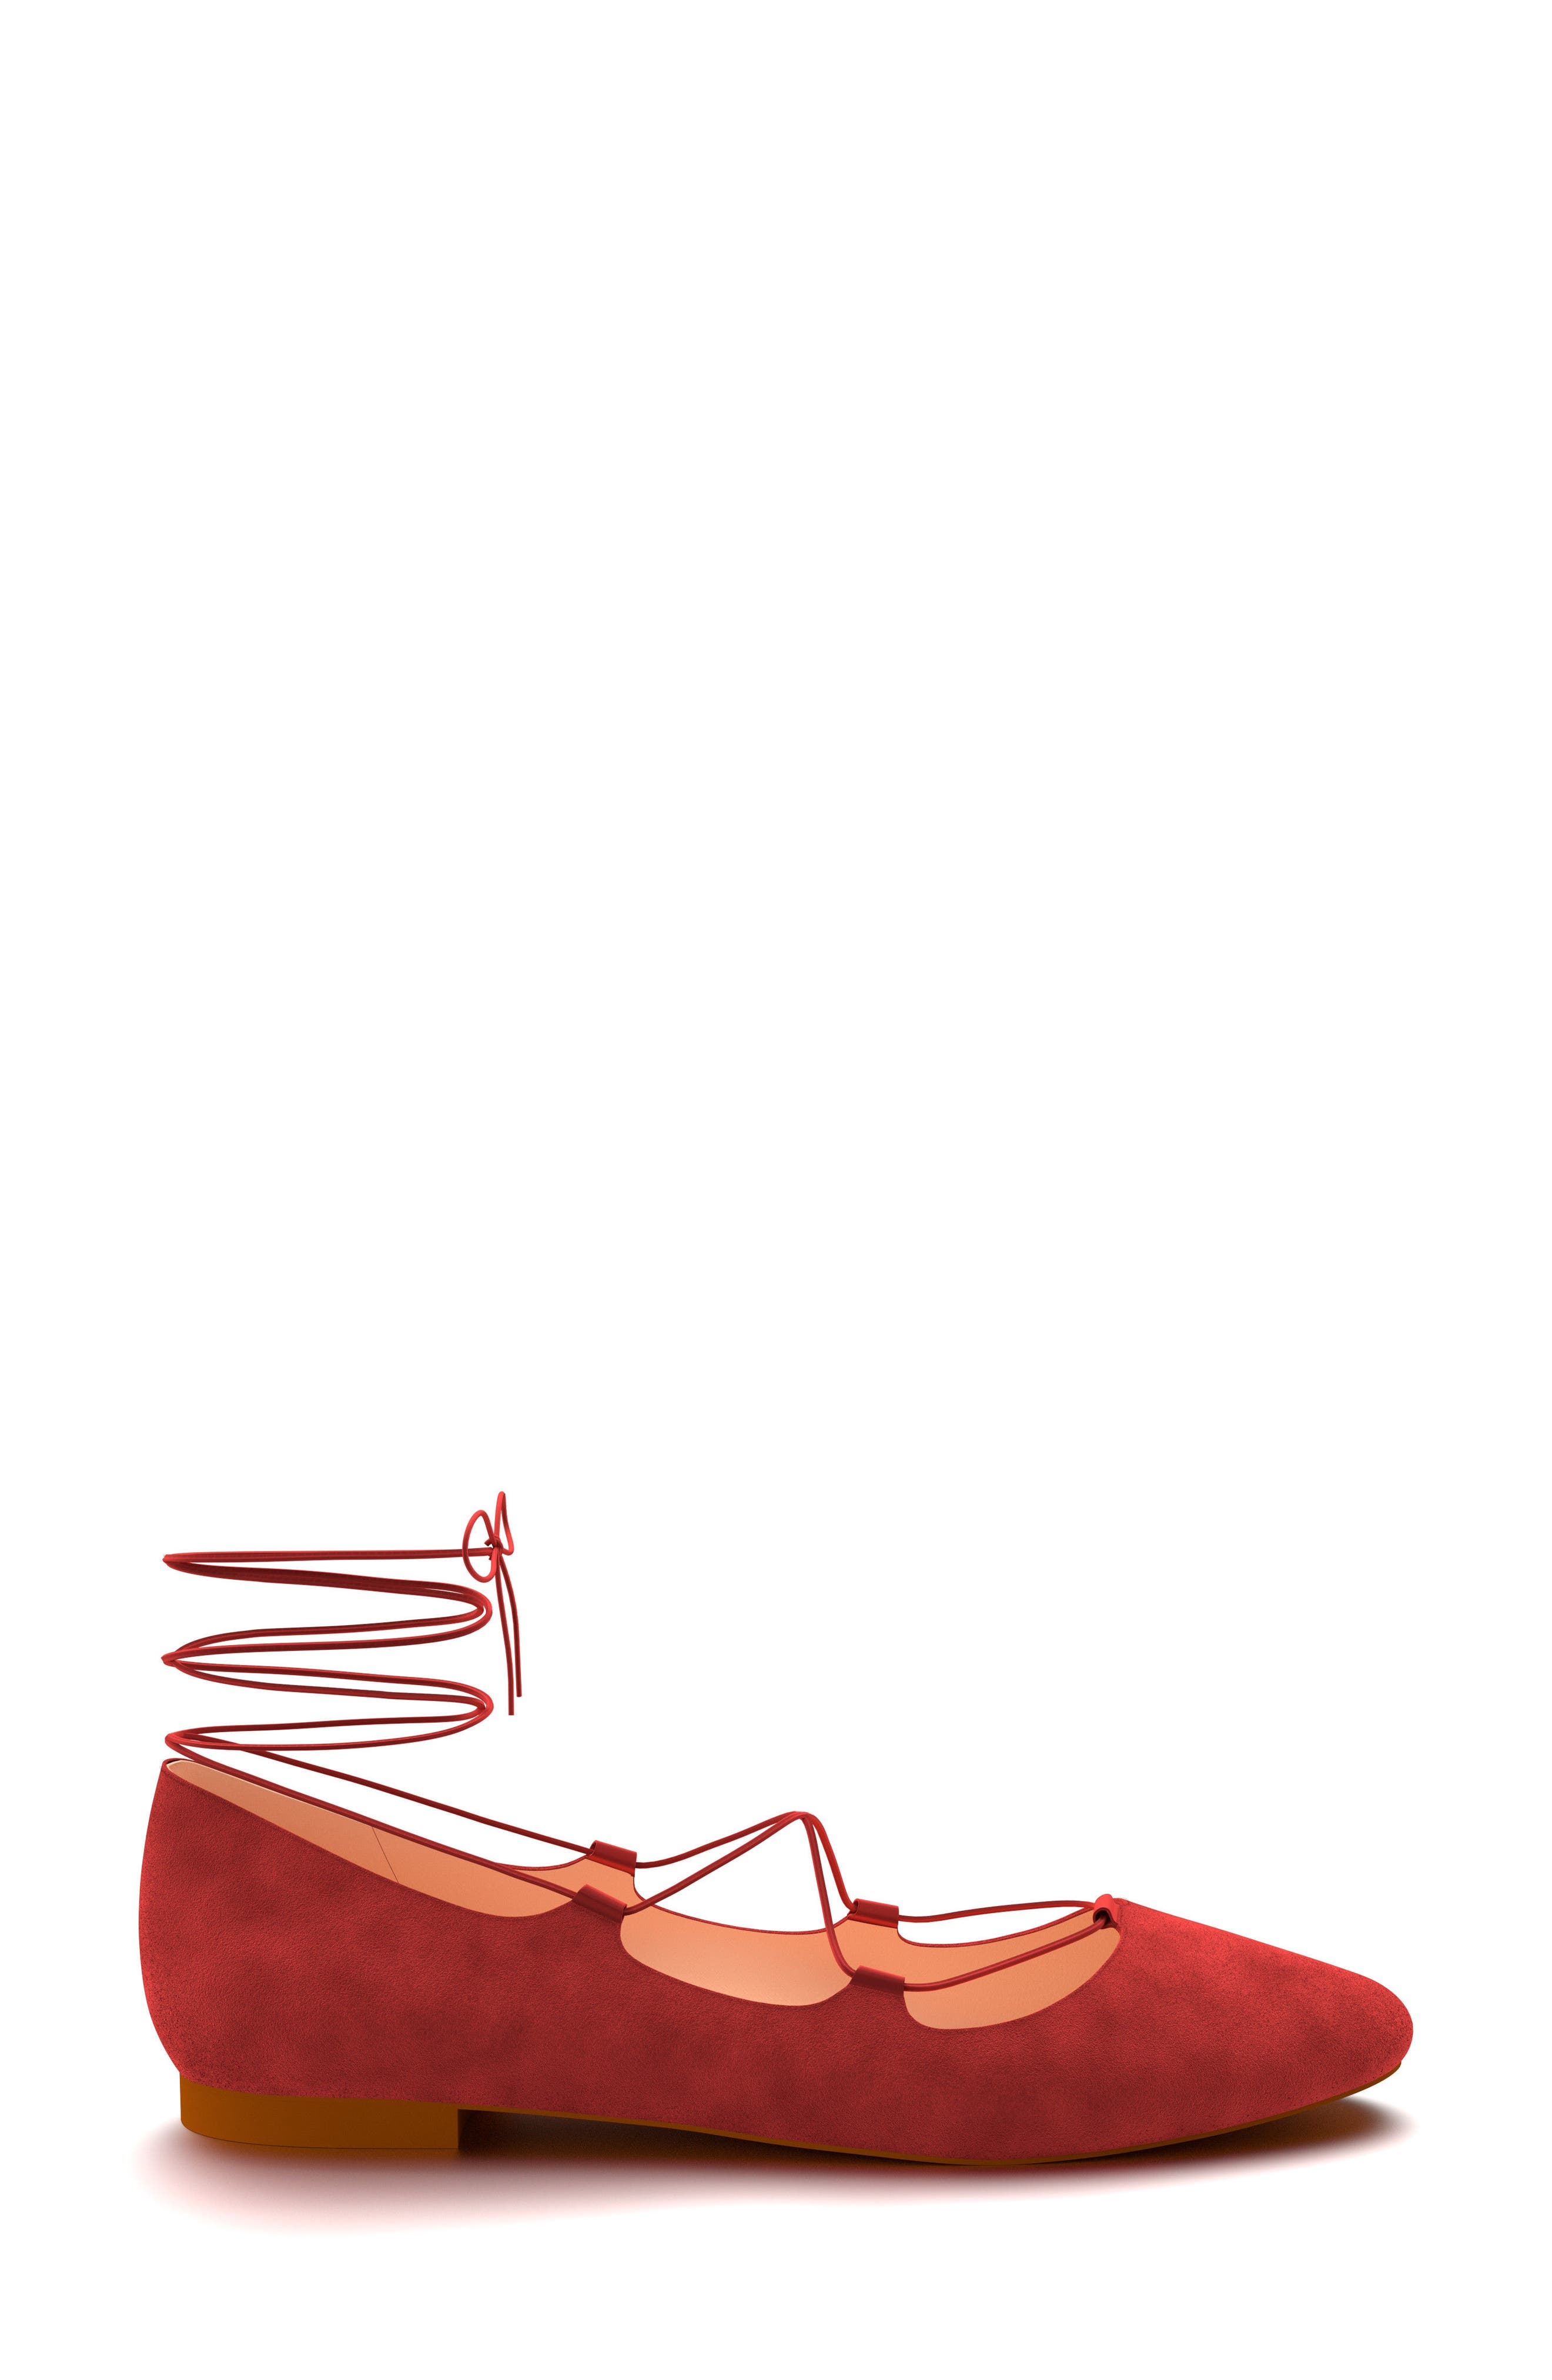 Ghillie Ballet Flat,                             Alternate thumbnail 2, color,                             Dark Red Suede